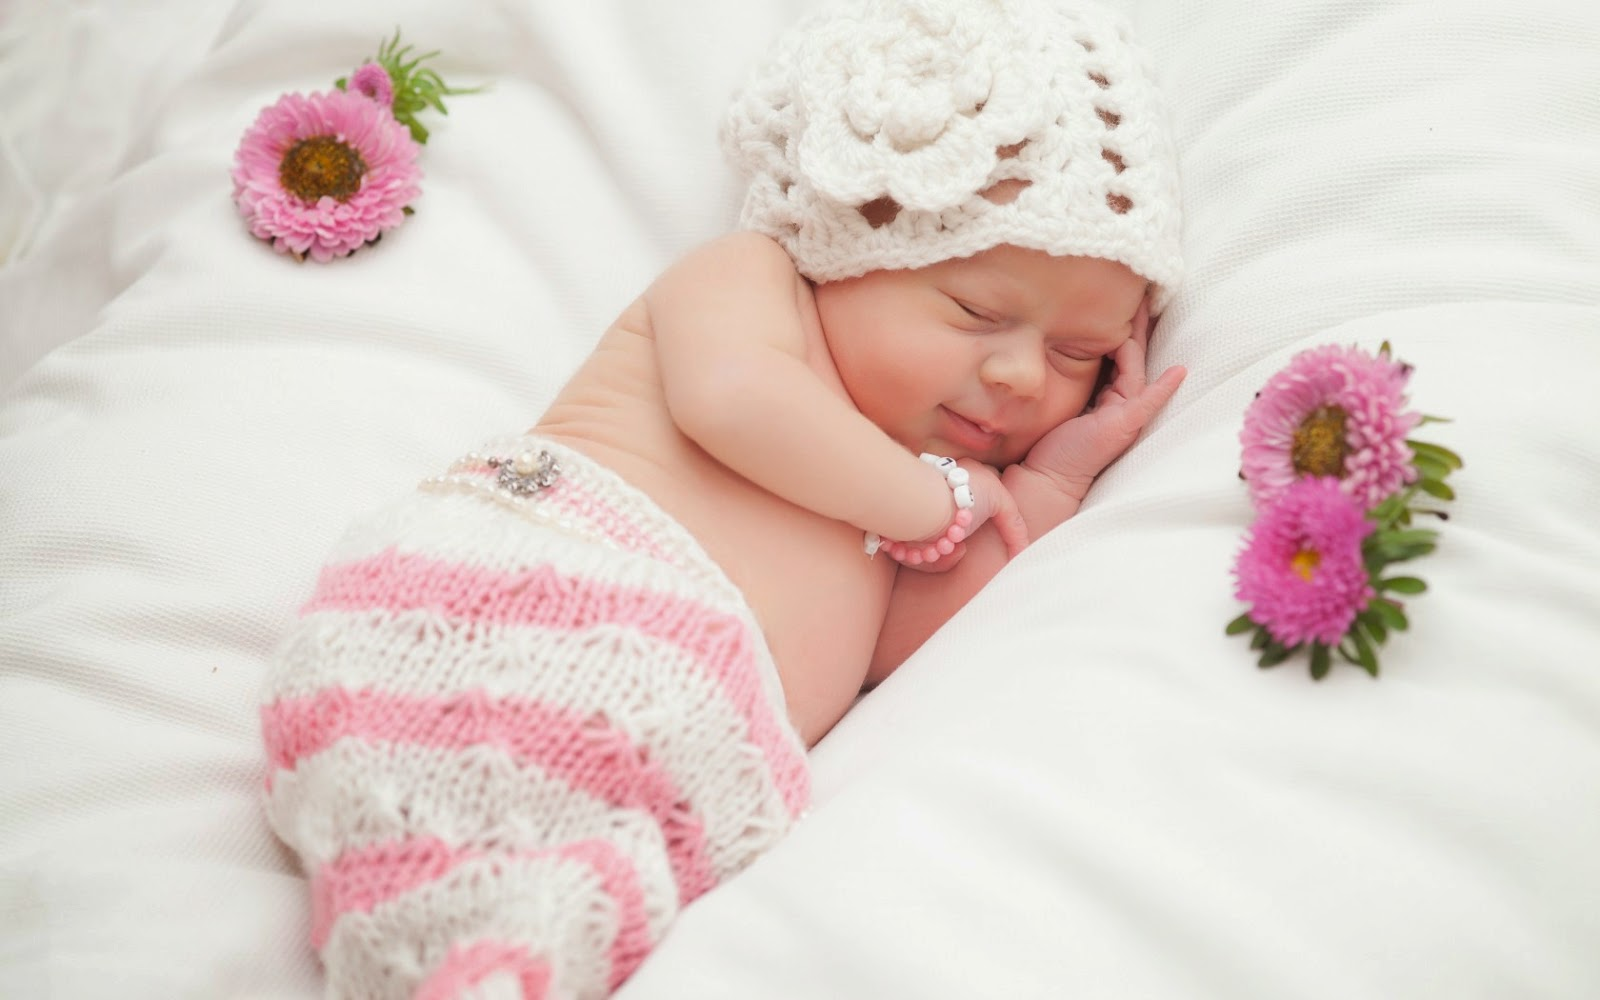 Cute-baby-girl-sleeping-with-smile-HD-photos-images-wallpapers-download.jpg